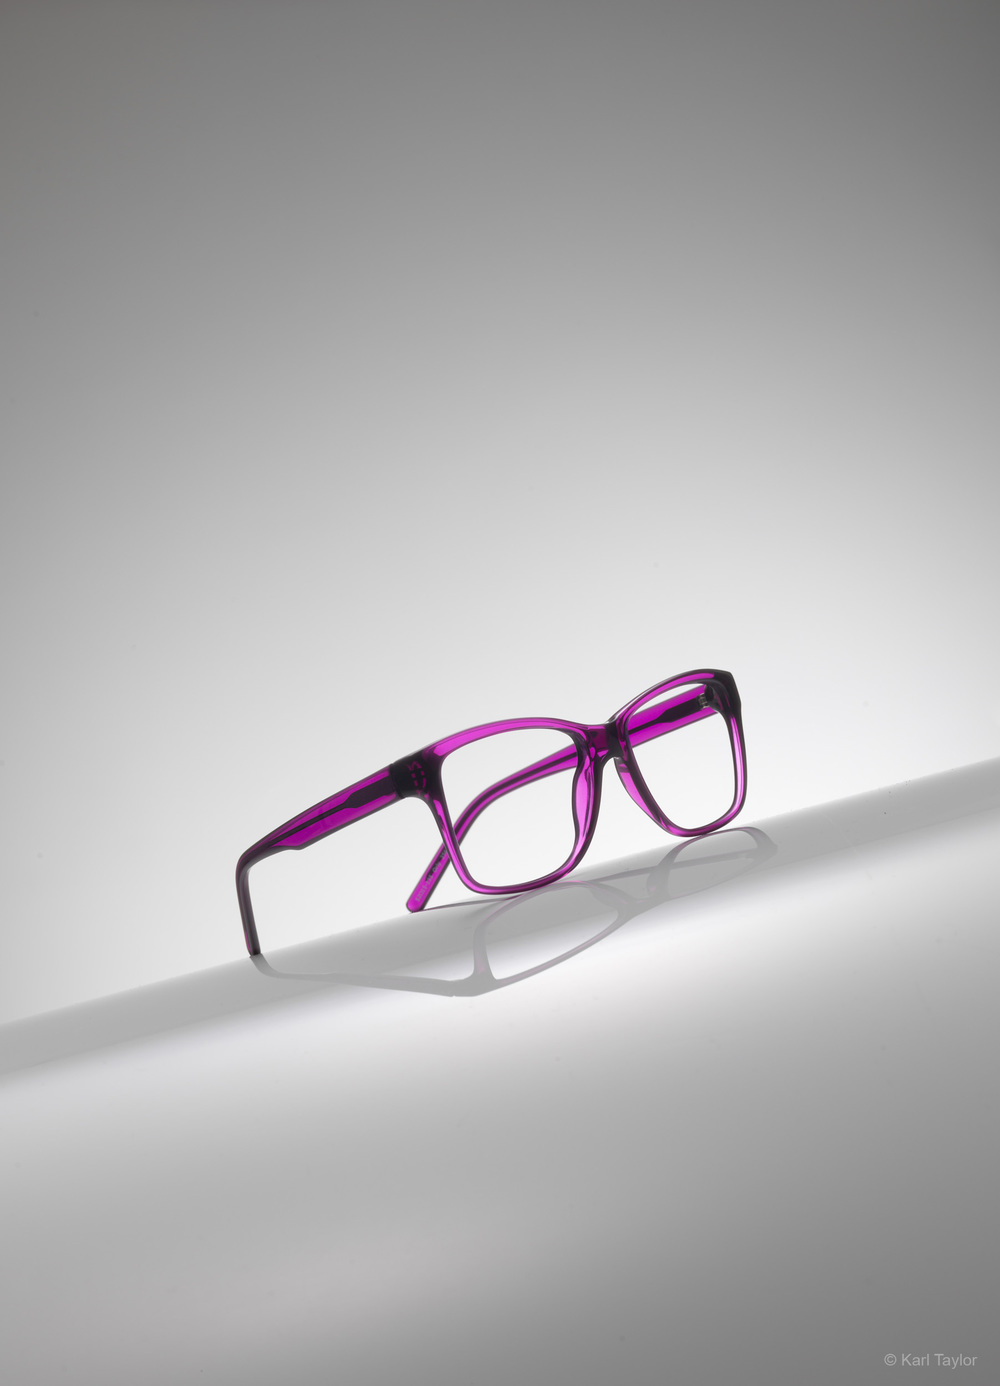 Karl_Taylor_purple_glasses.jpg